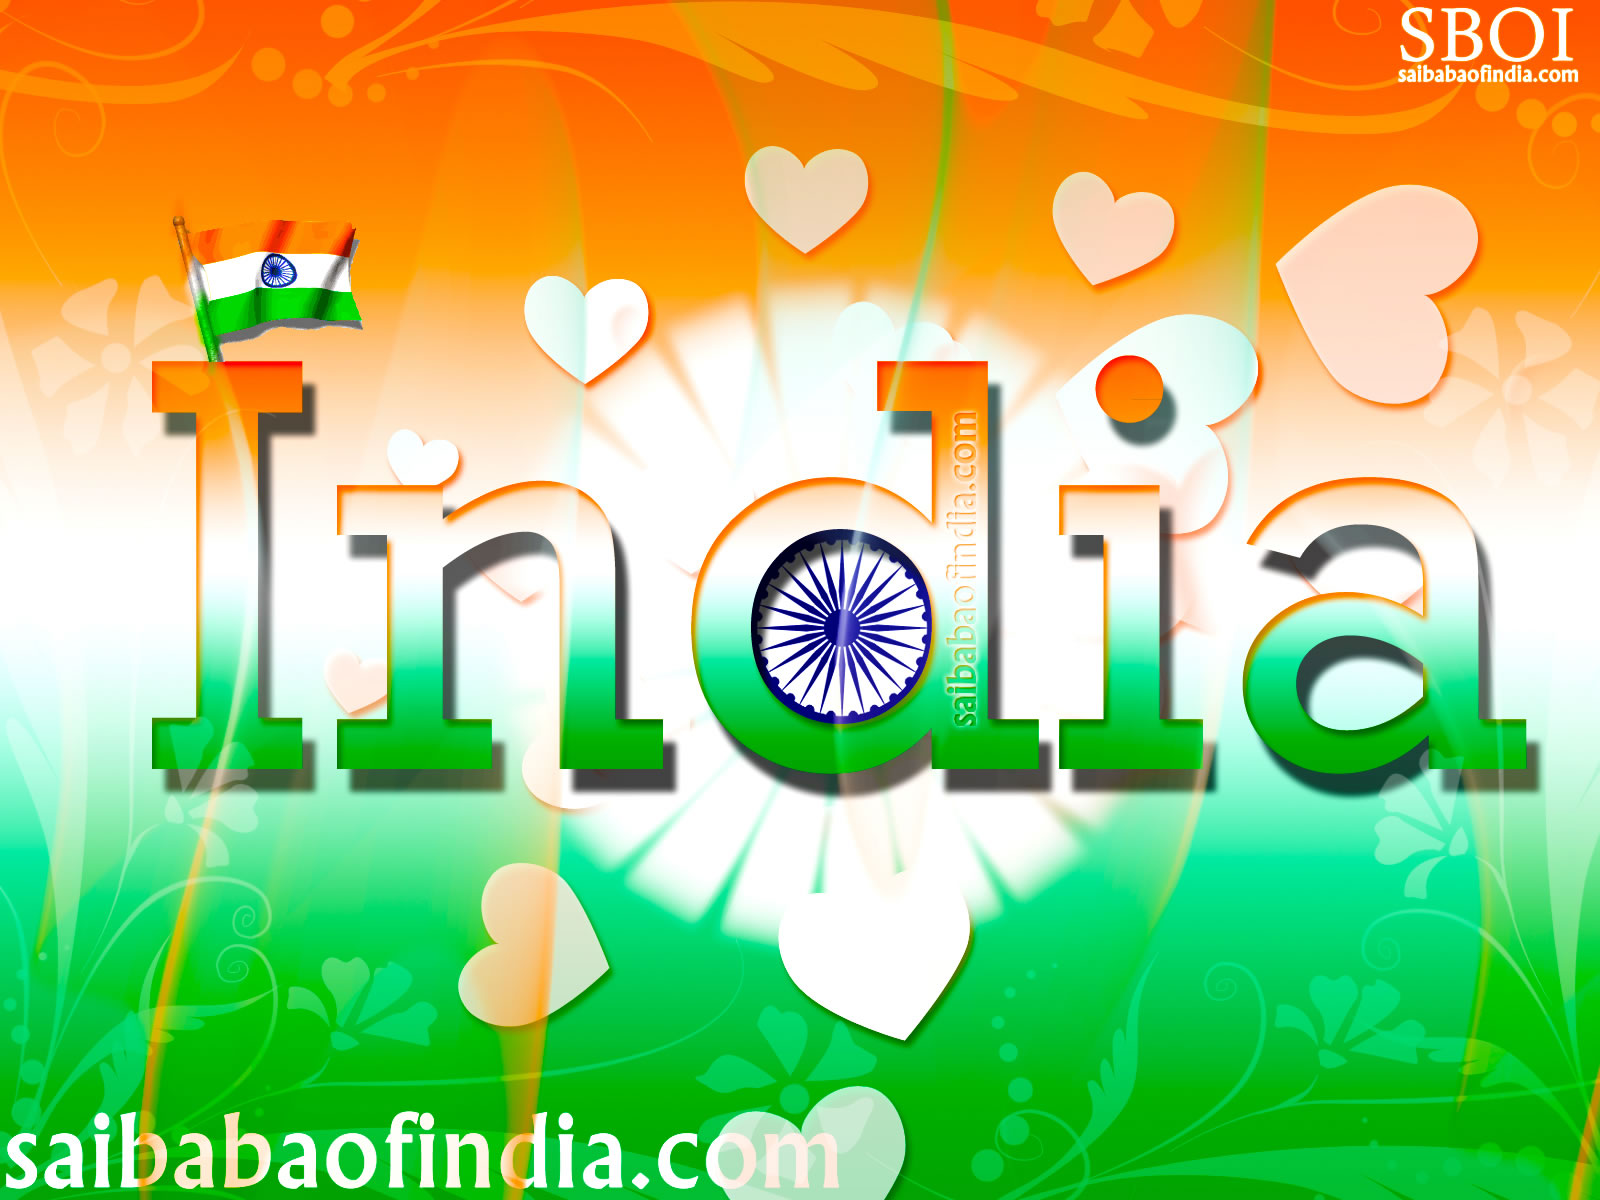 Wallpaper download india -  Indian Independence Day 15th August Flag India Jai